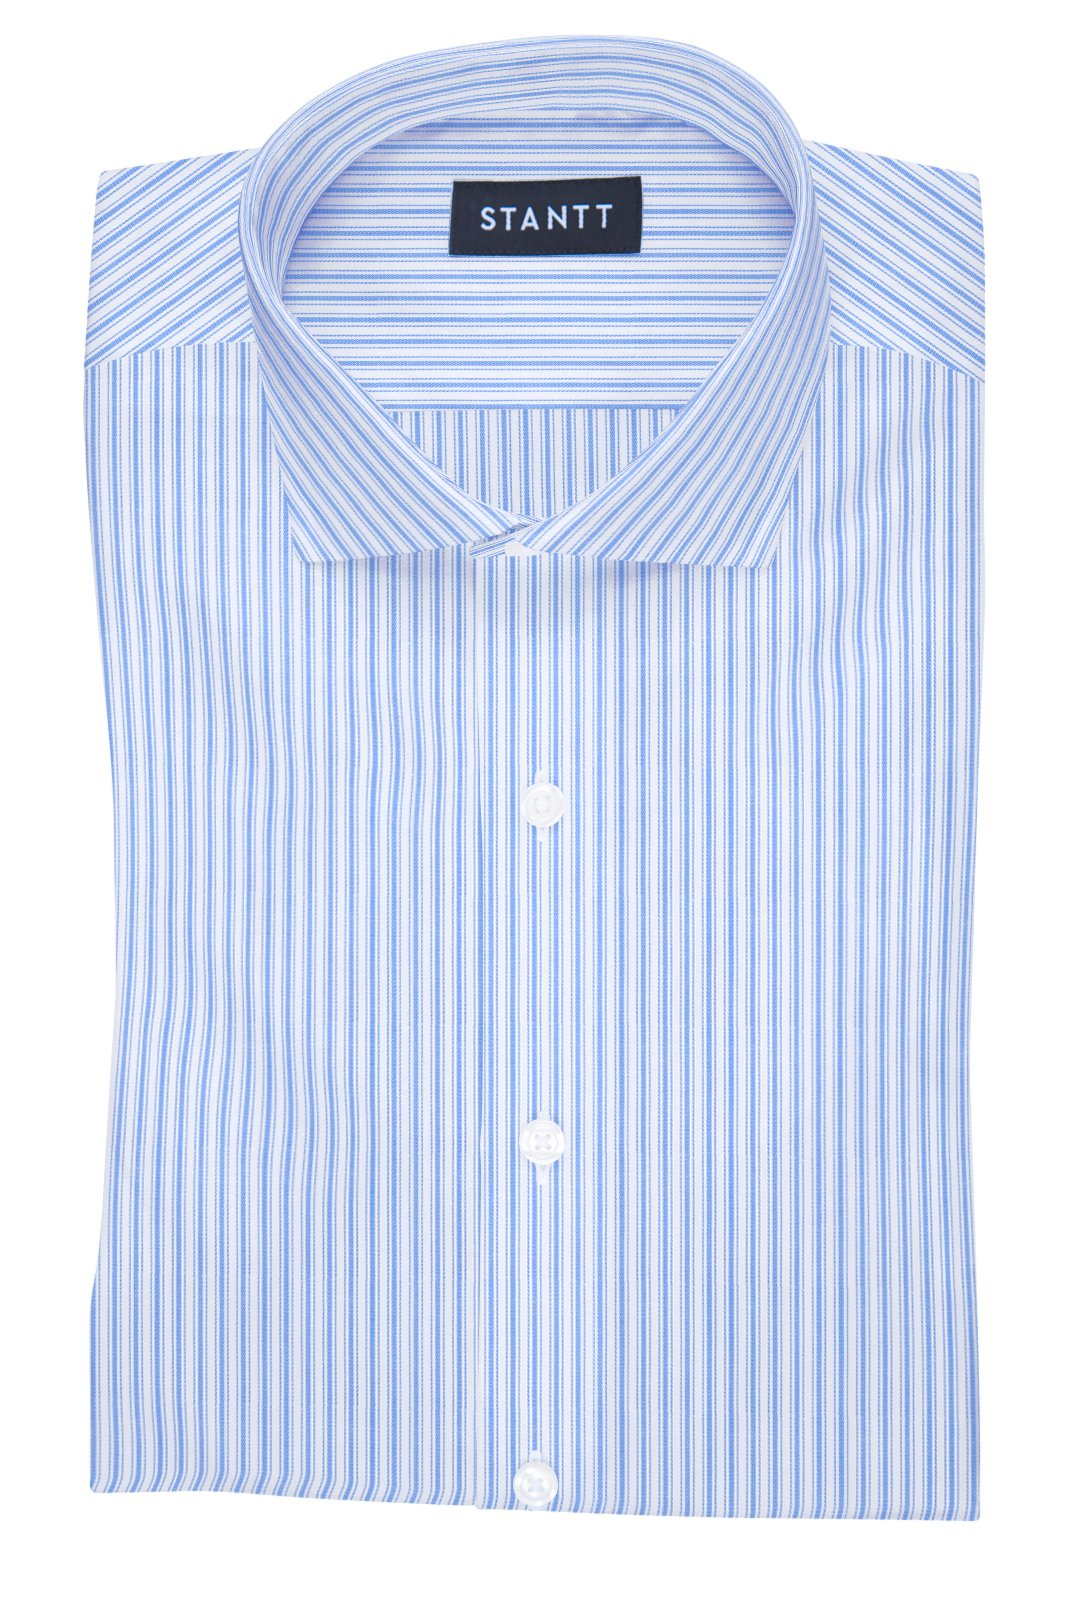 British Blue Accented Stripe: Cutaway Collar, French Cuff